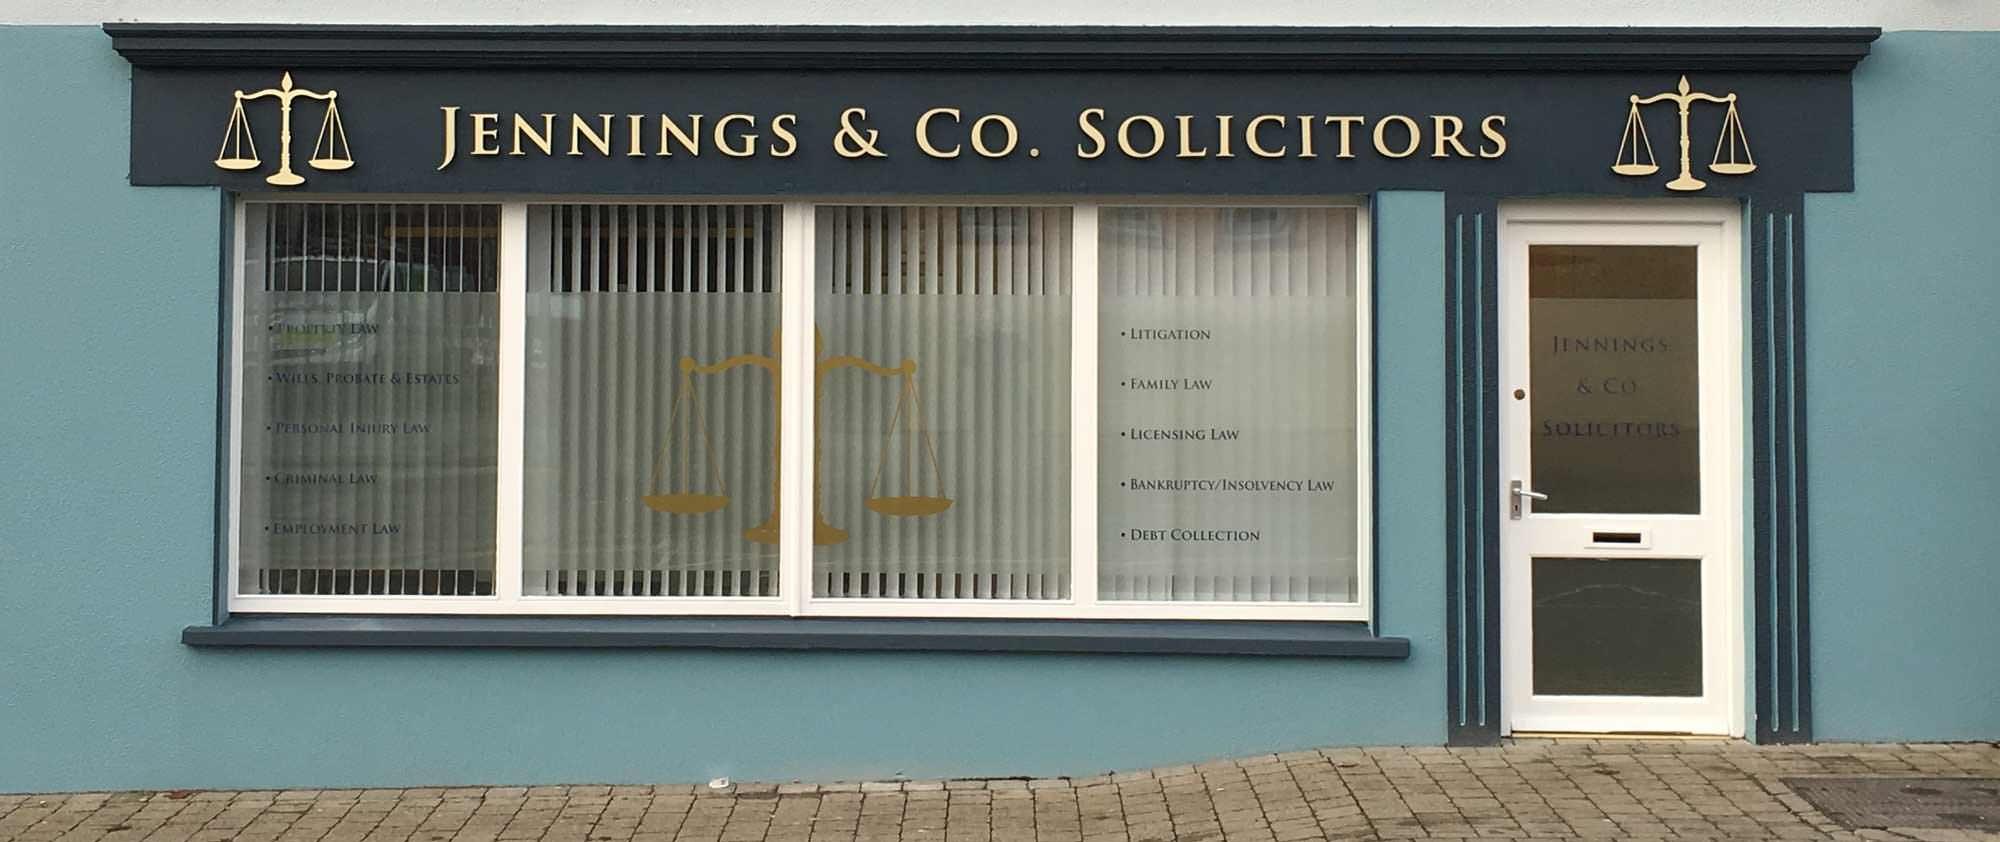 Jennings & Co. Solicitors Office in Claremorris Co Mayo